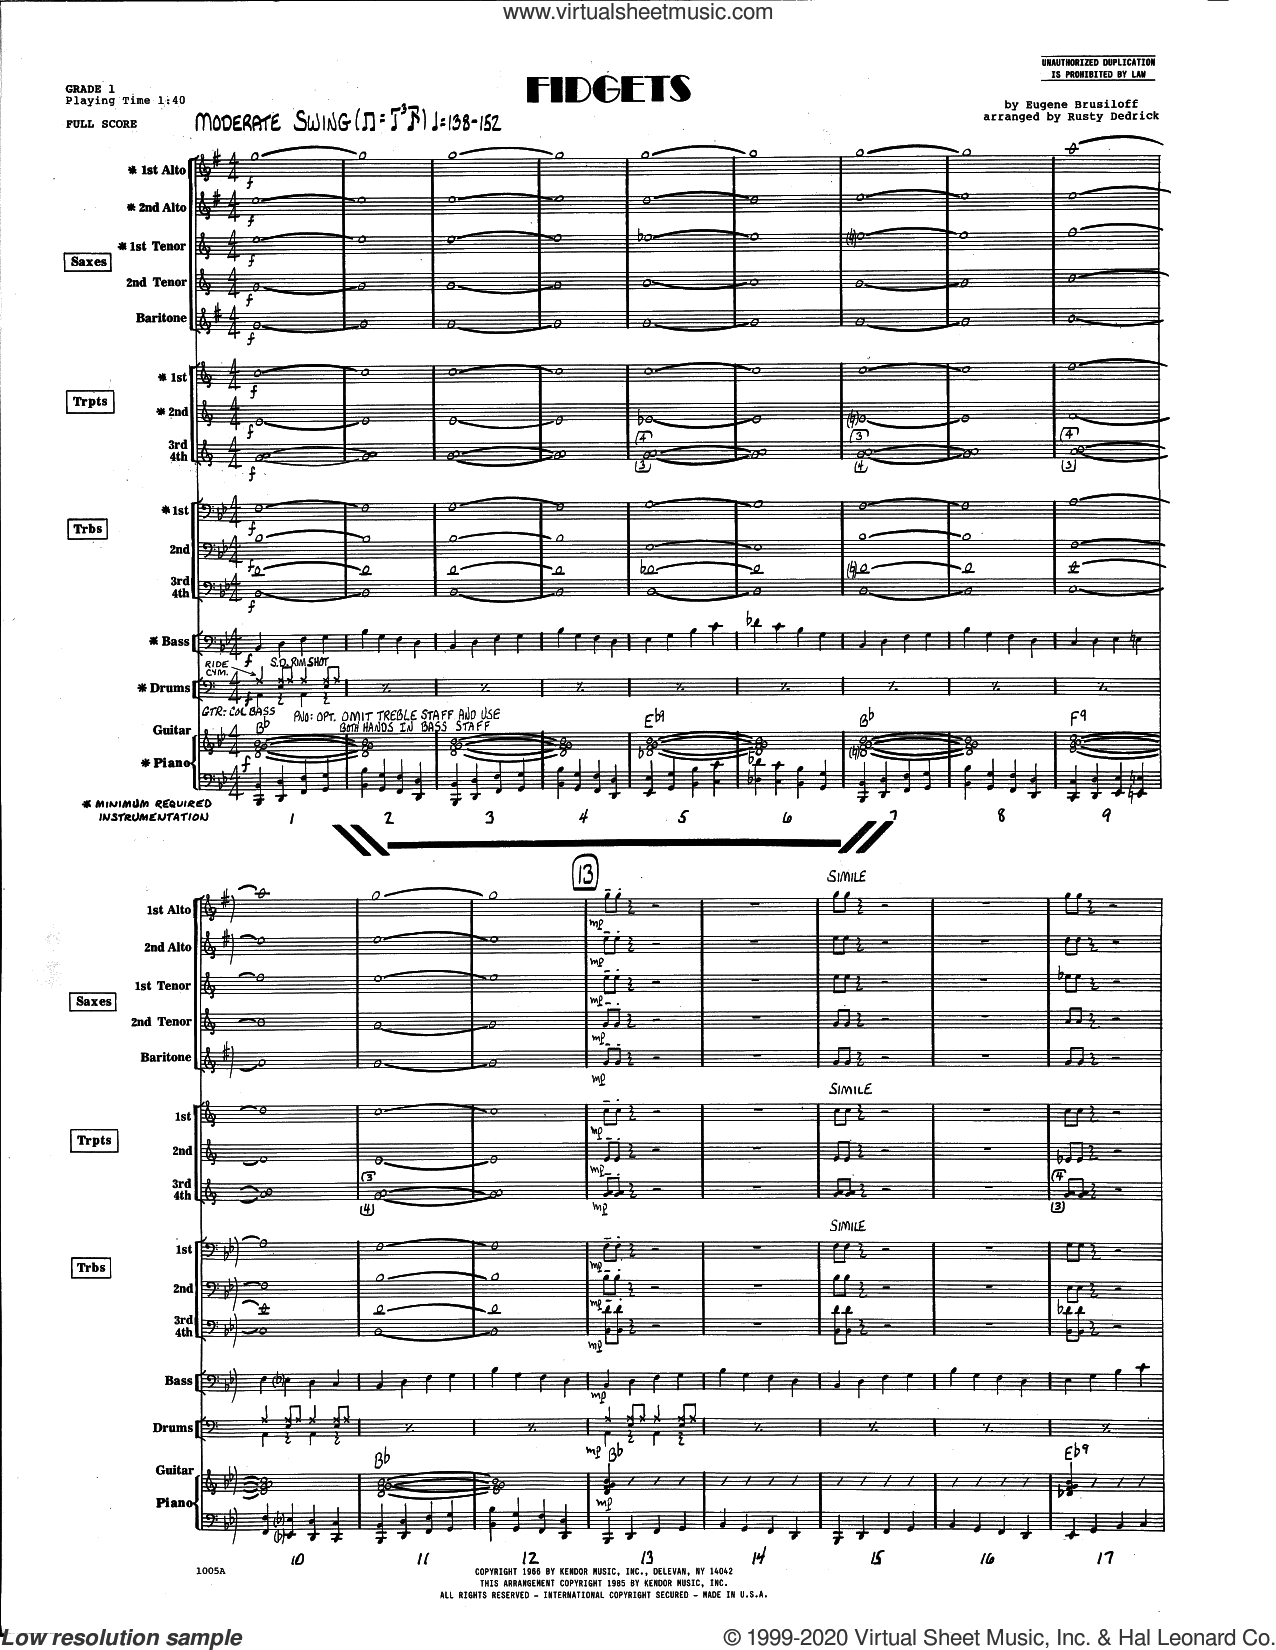 Fidgets (arr. Rusty Dedrick) (COMPLETE) sheet music for jazz band by Eugene Brusiloff and Rusty Dedrick, intermediate skill level